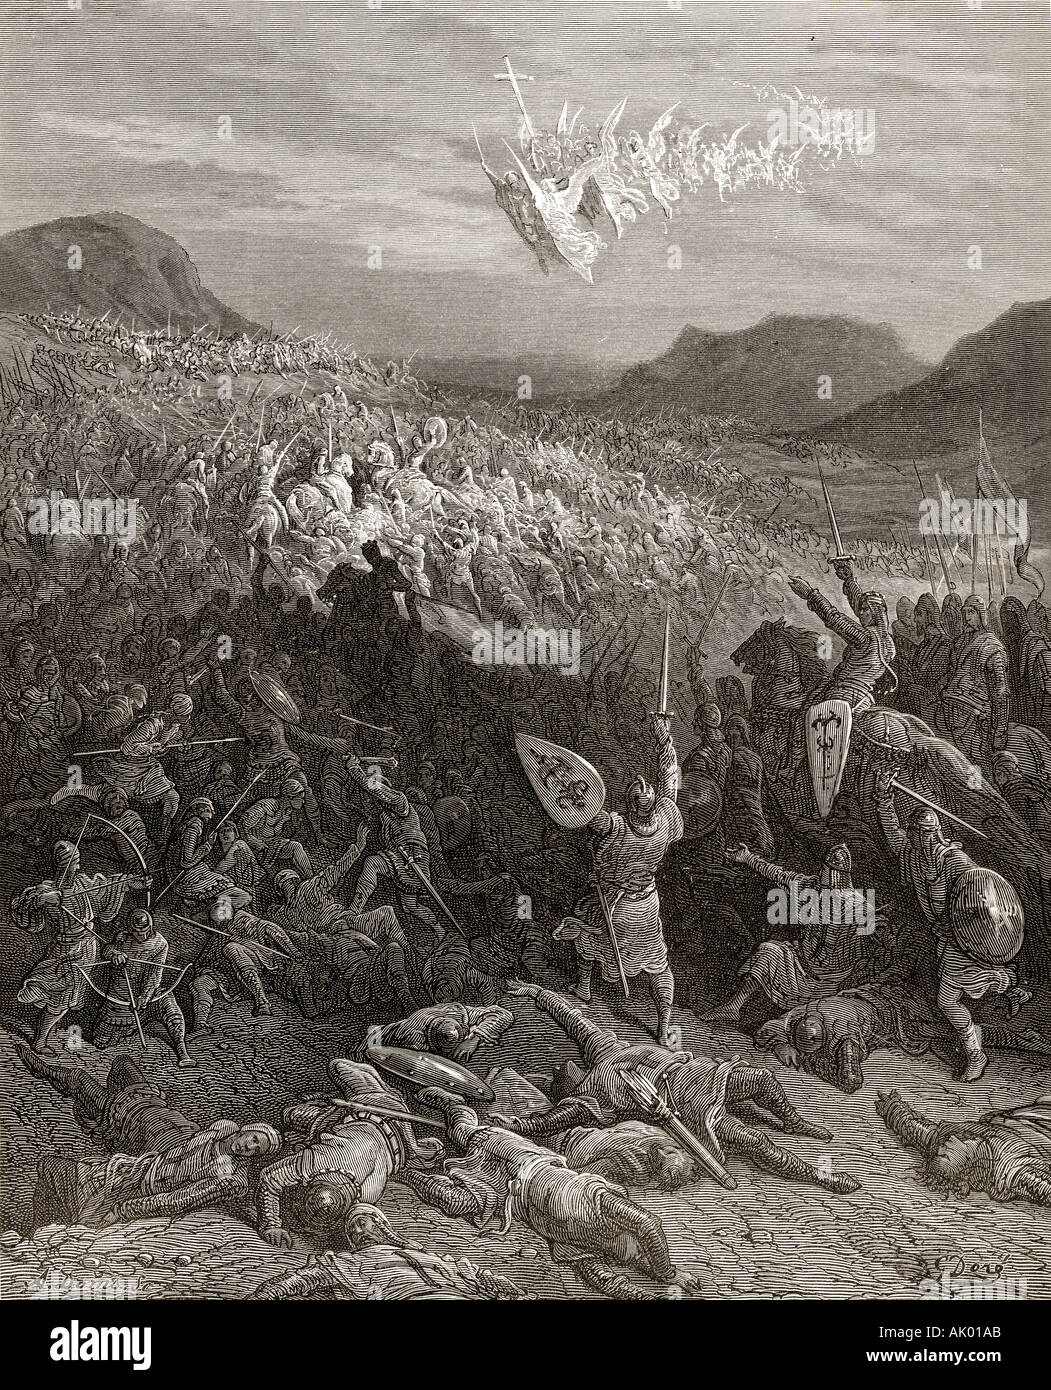 The Siege of Nicaea, during the first crusade 1097.  By Gustave Doré. - Stock Image